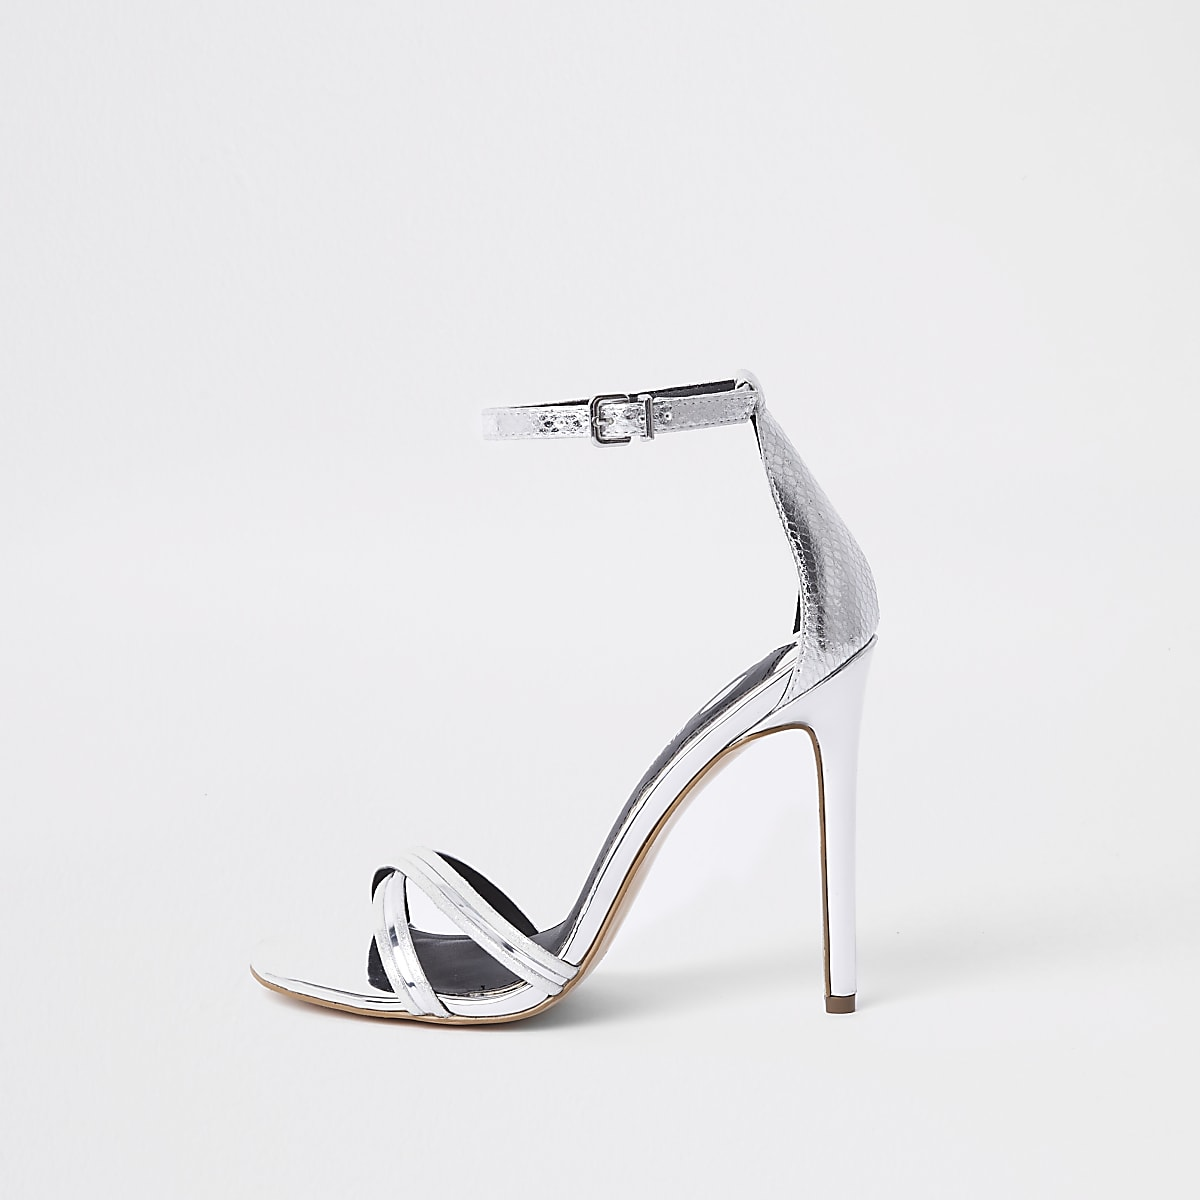 ​Barely There – Sandalen in Silber-Metallic​